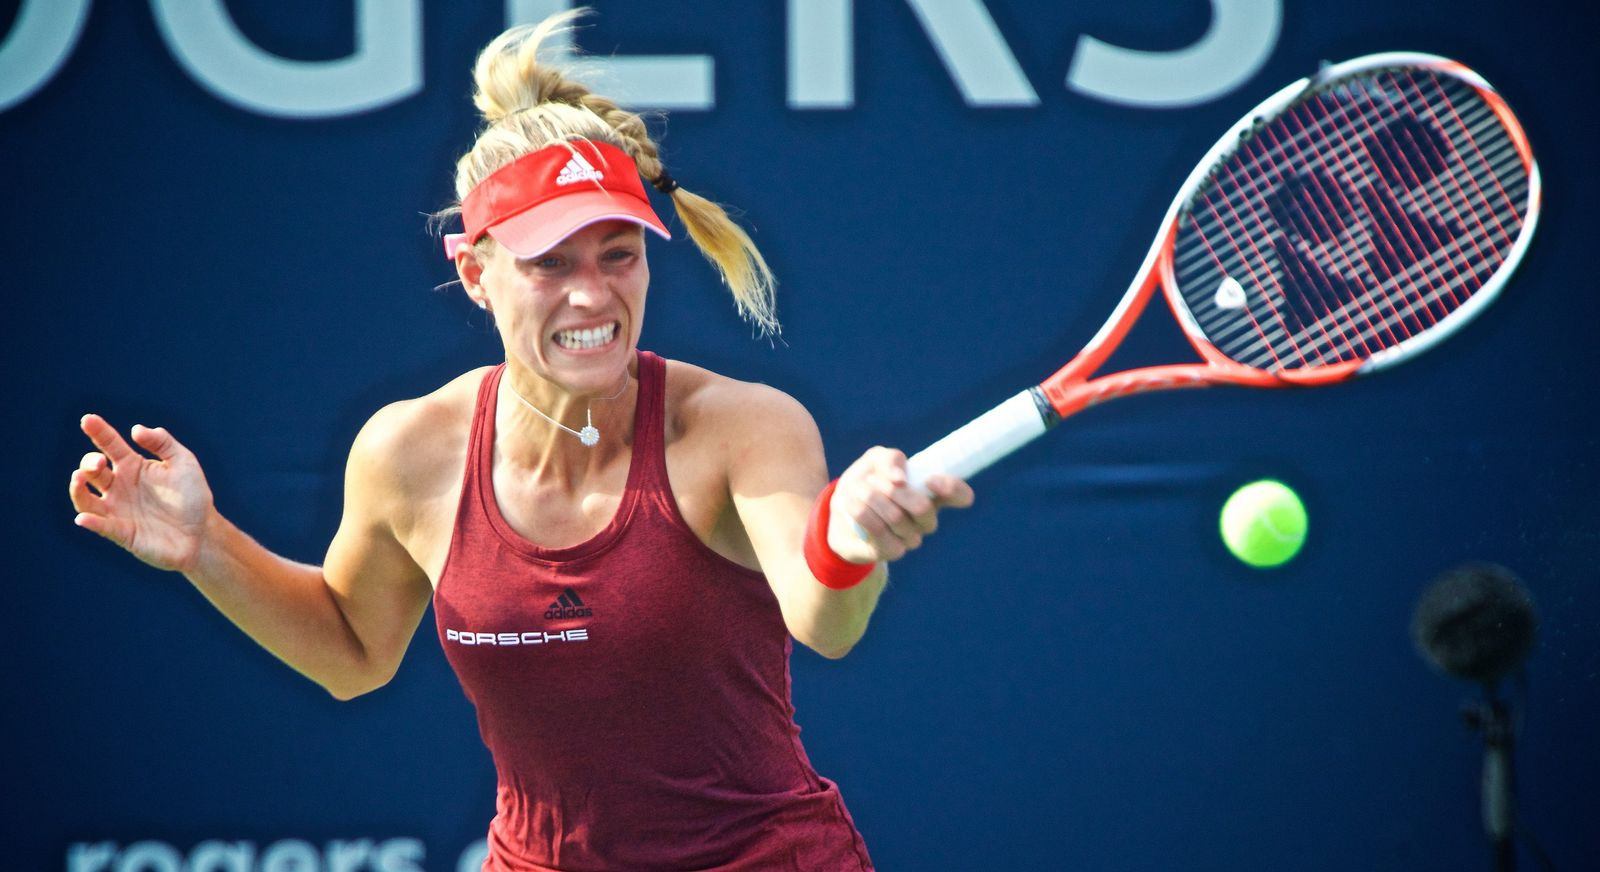 Rogers Cup 2016 Tennis Tournament